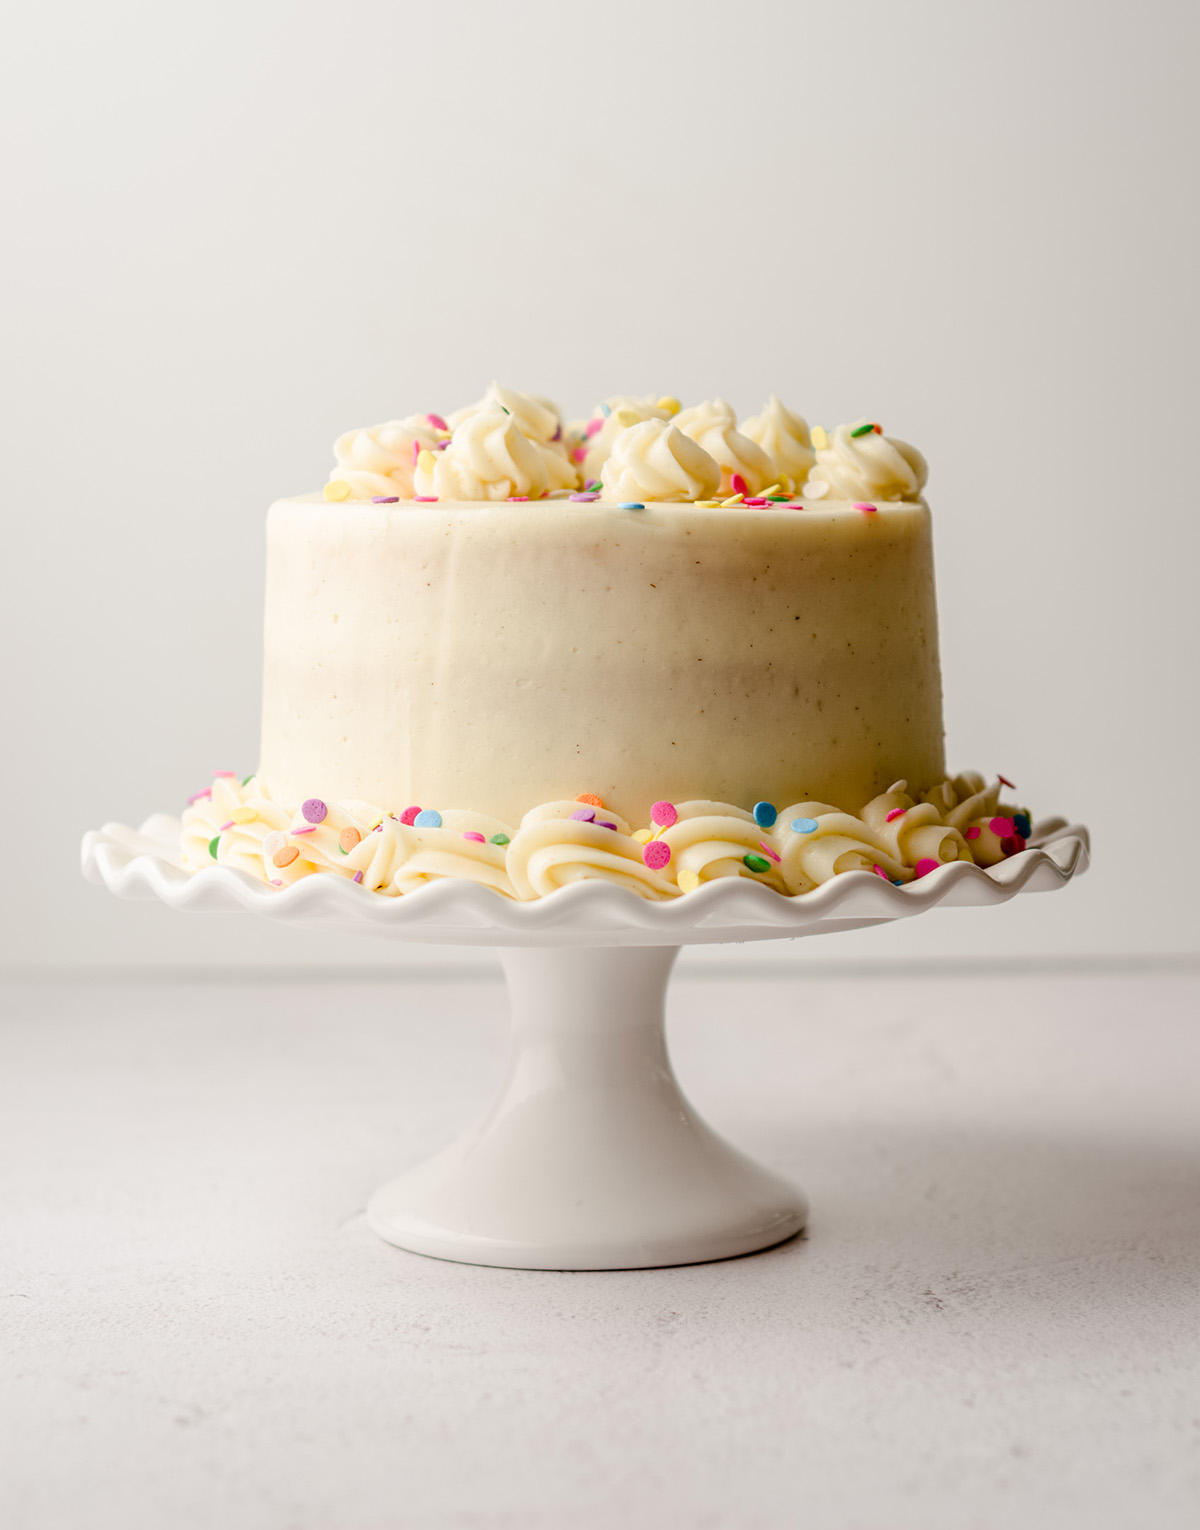 a small vanilla cake with rainbow sprinkles on a white cake stand